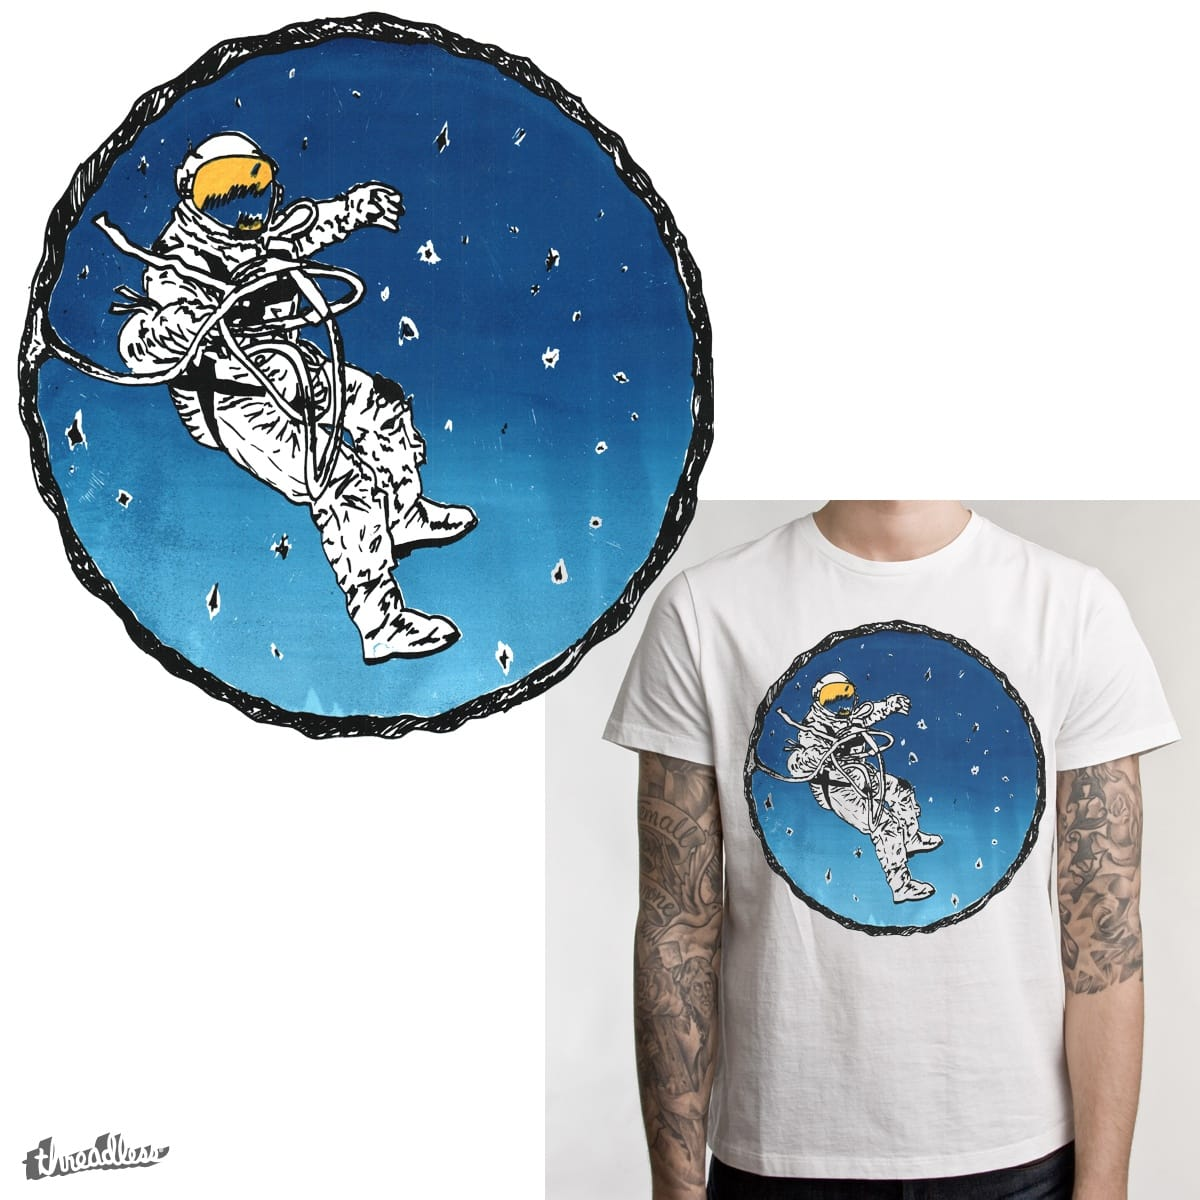 Hanging Ten by tbear990 on Threadless